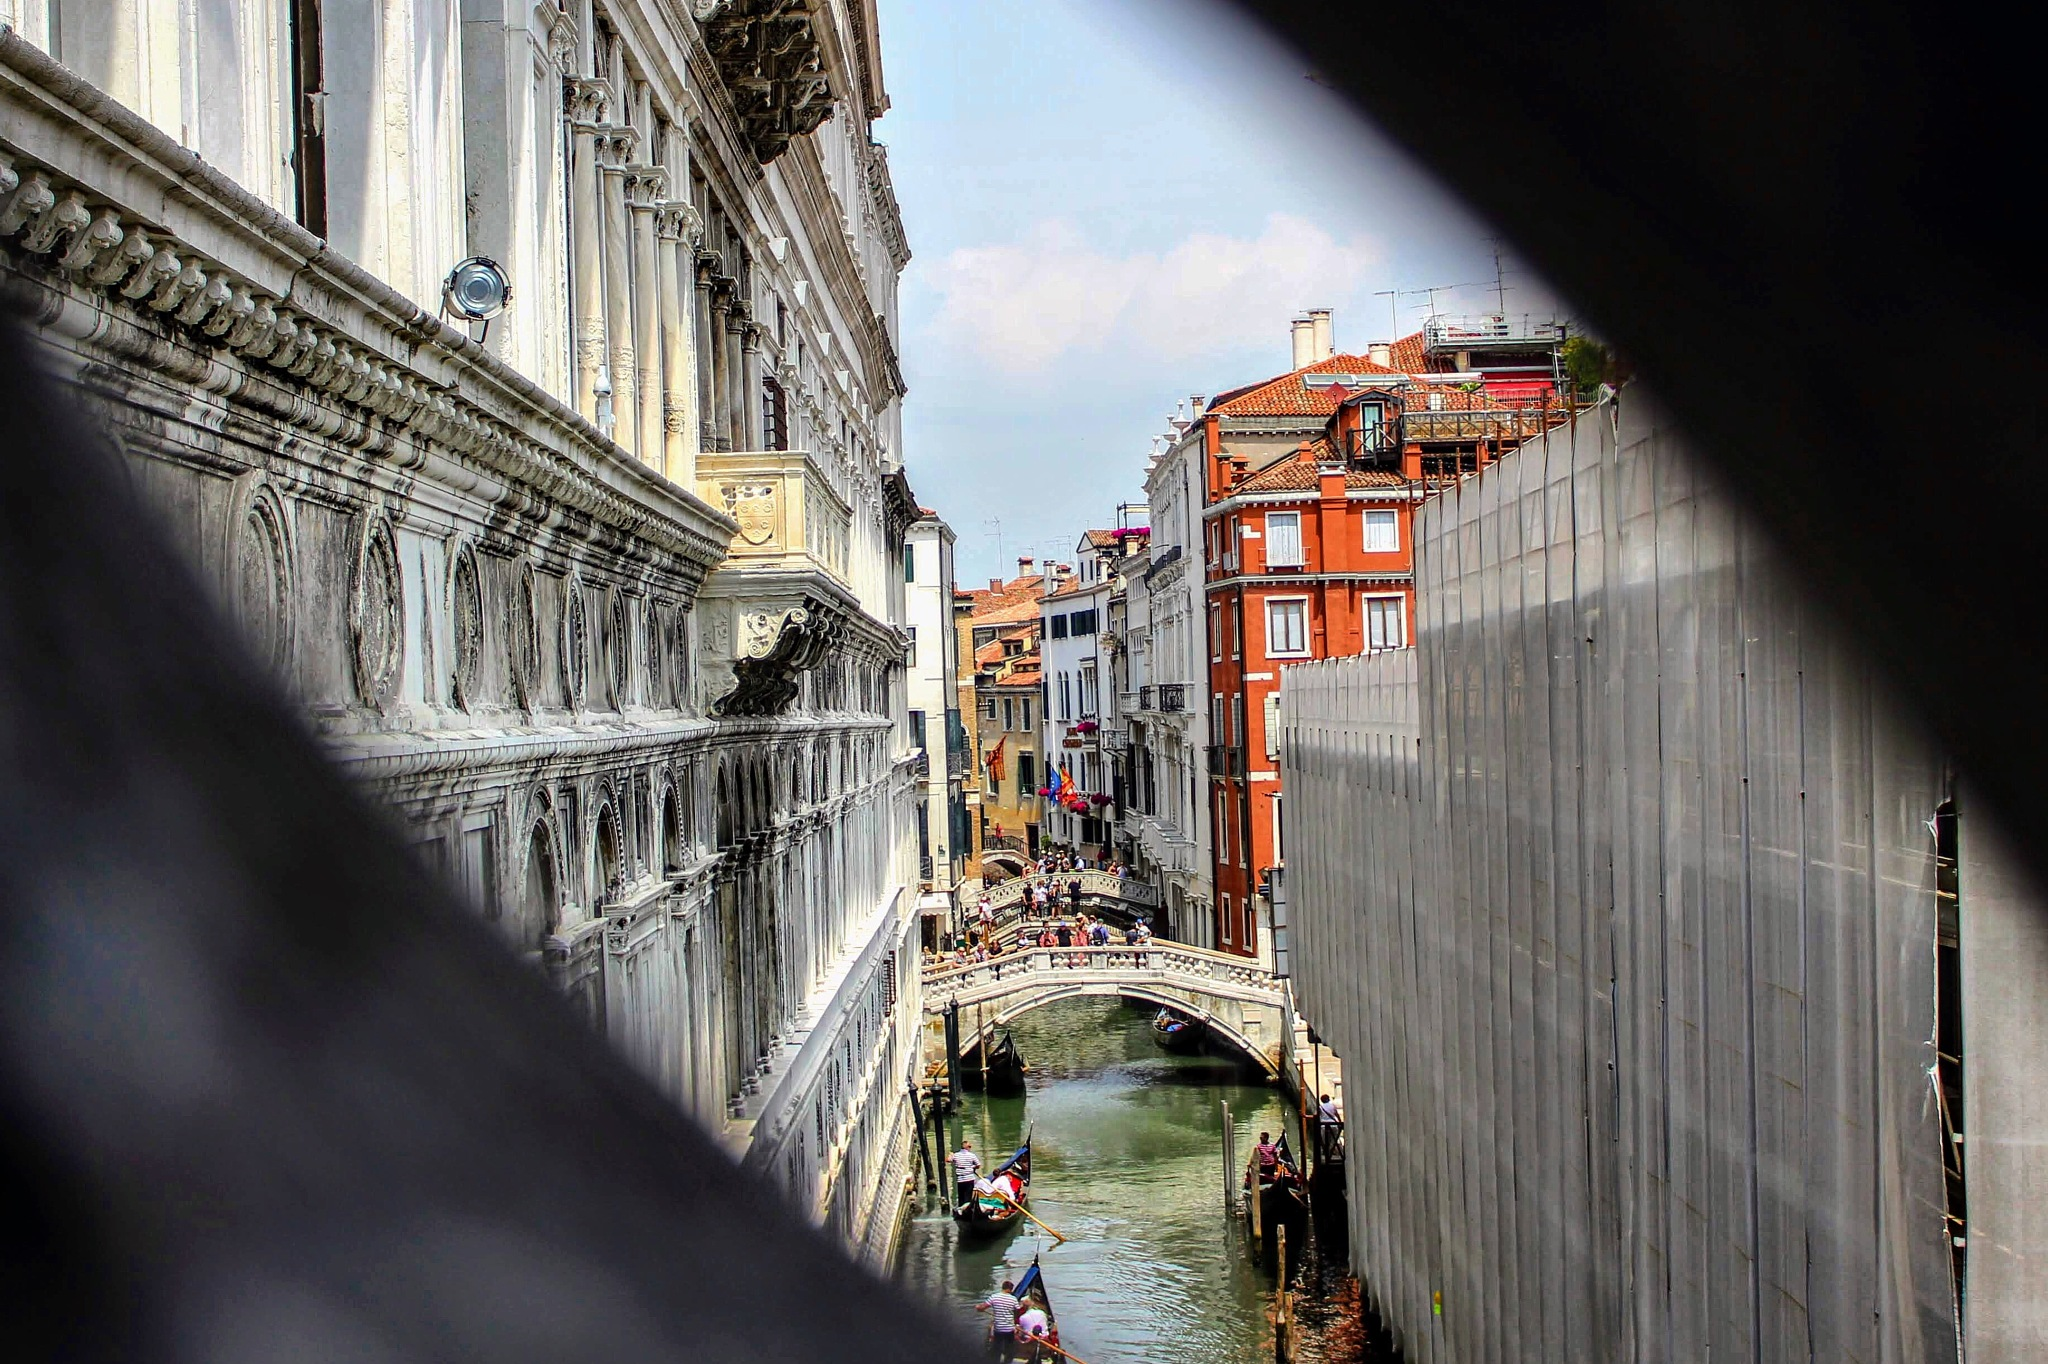 A View of Venice by Bri Nicholas